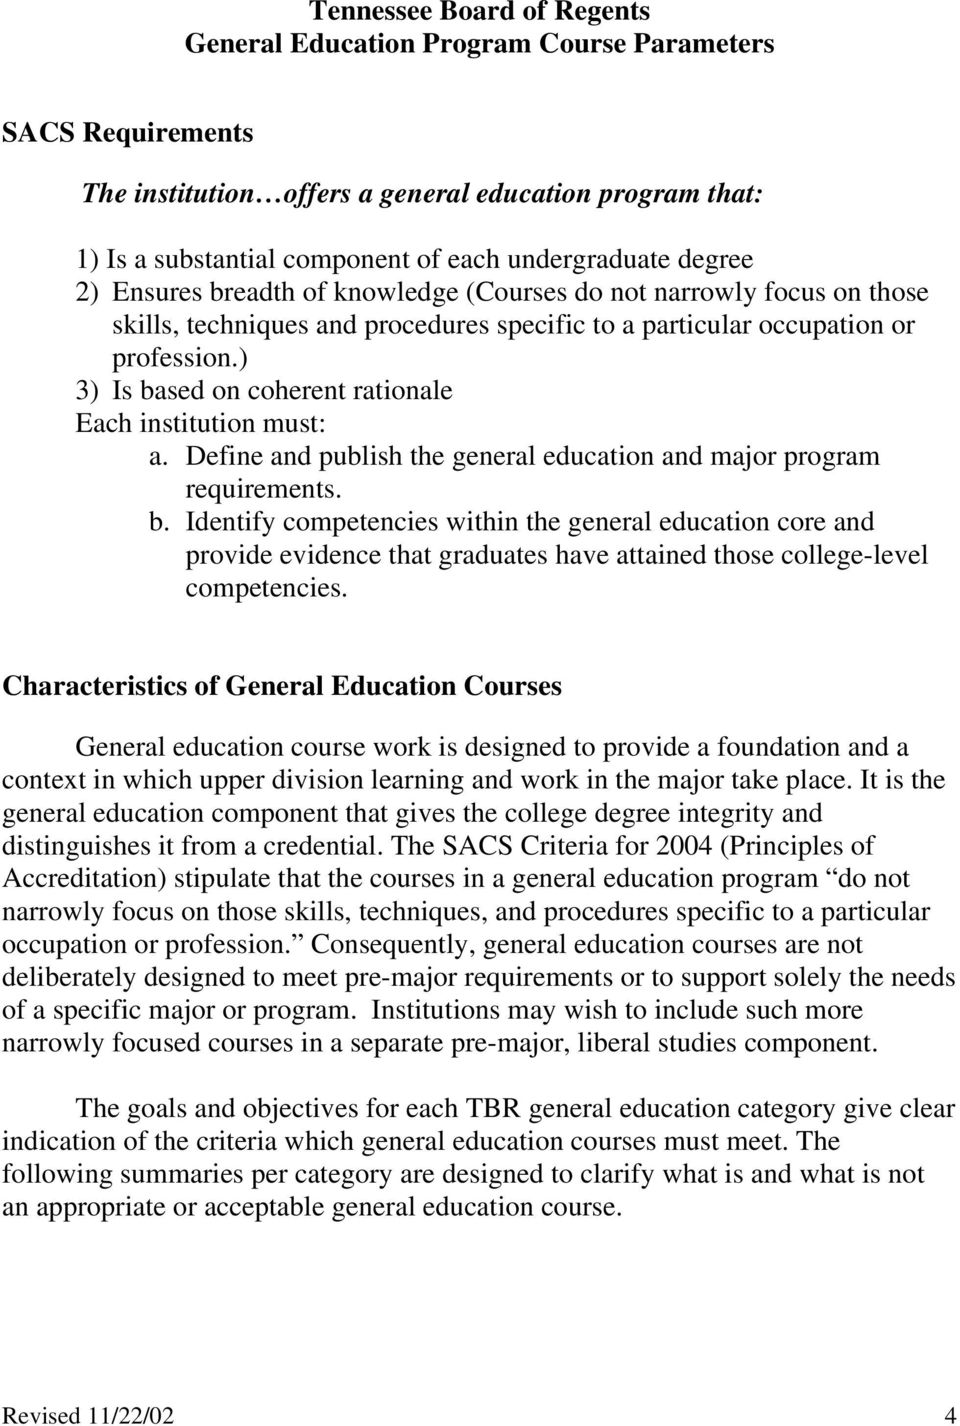 ) 3) Is based on coherent rationale Each institution must: a. Define and publish the general education and major program requirements. b. Identify competencies within the general education core and provide evidence that graduates have attained those college-level competencies.